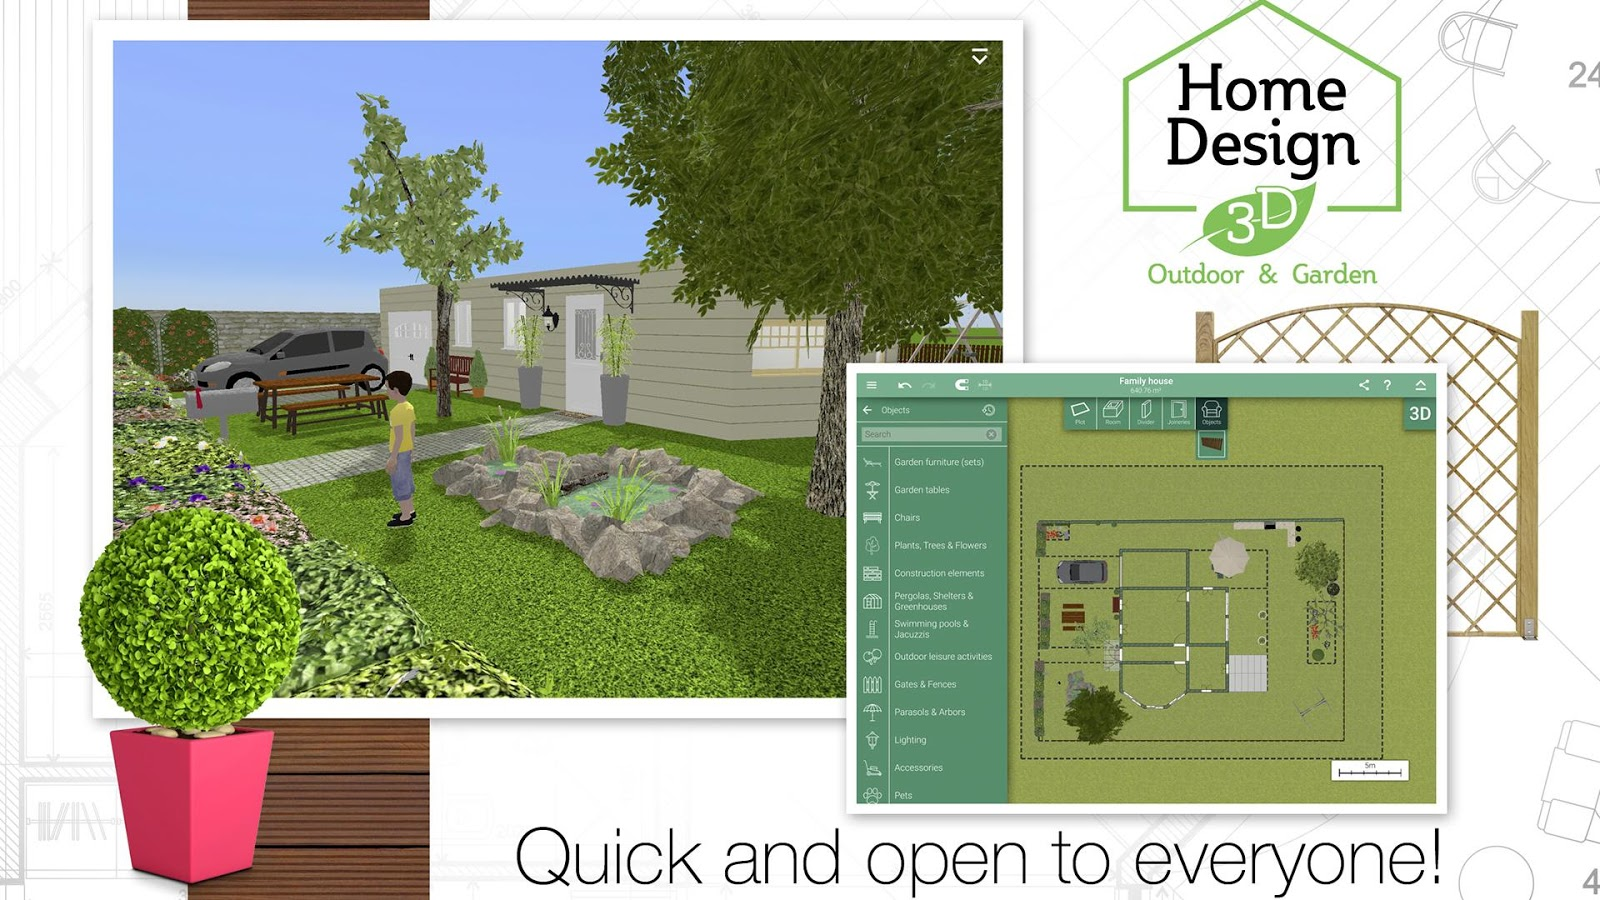 Home Design 3D Outdoor-Garden – Android Apps on Google Play